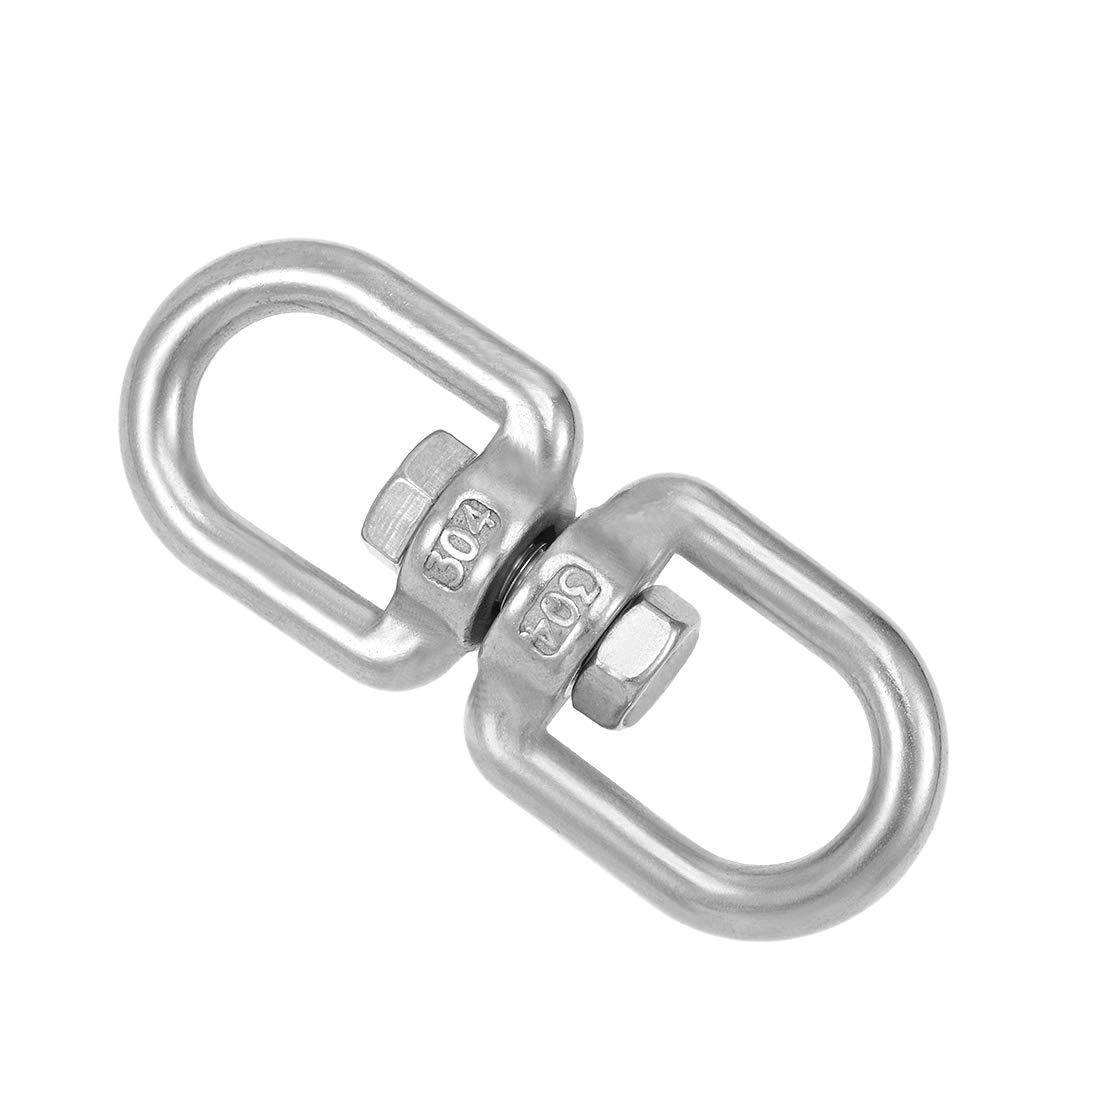 uxcell Marine Mooring Stainless Steel 4mm 5//32 inches Eye to Eye Swivel Ring